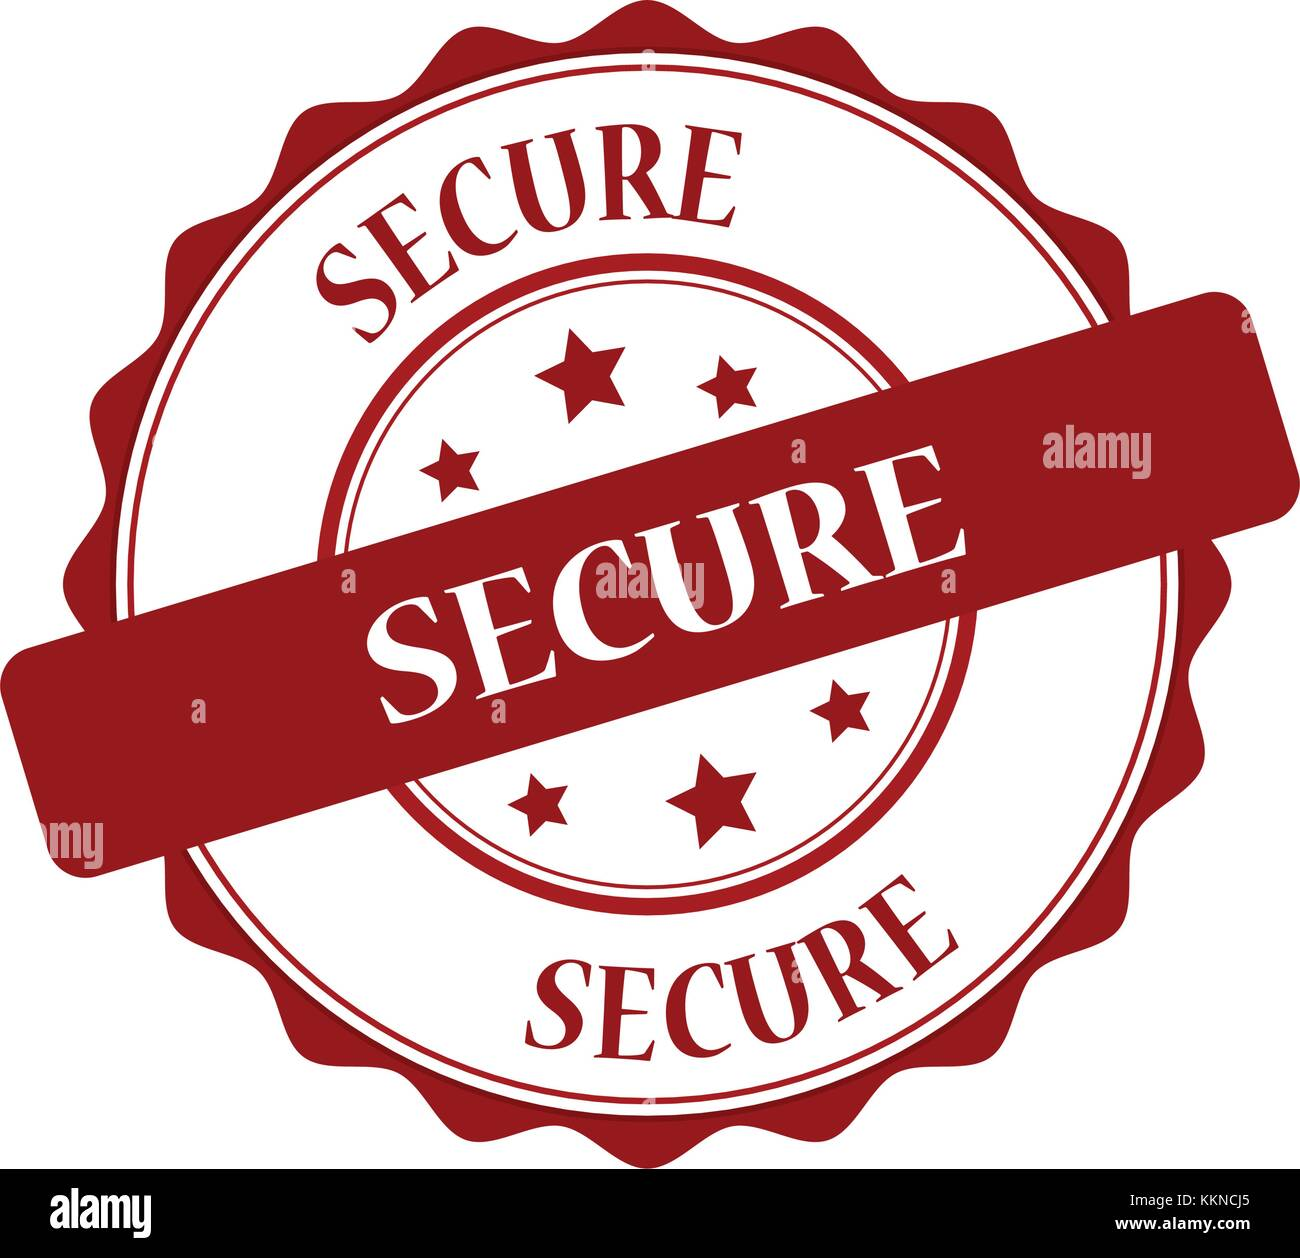 Secure stamp illustration - Stock Vector